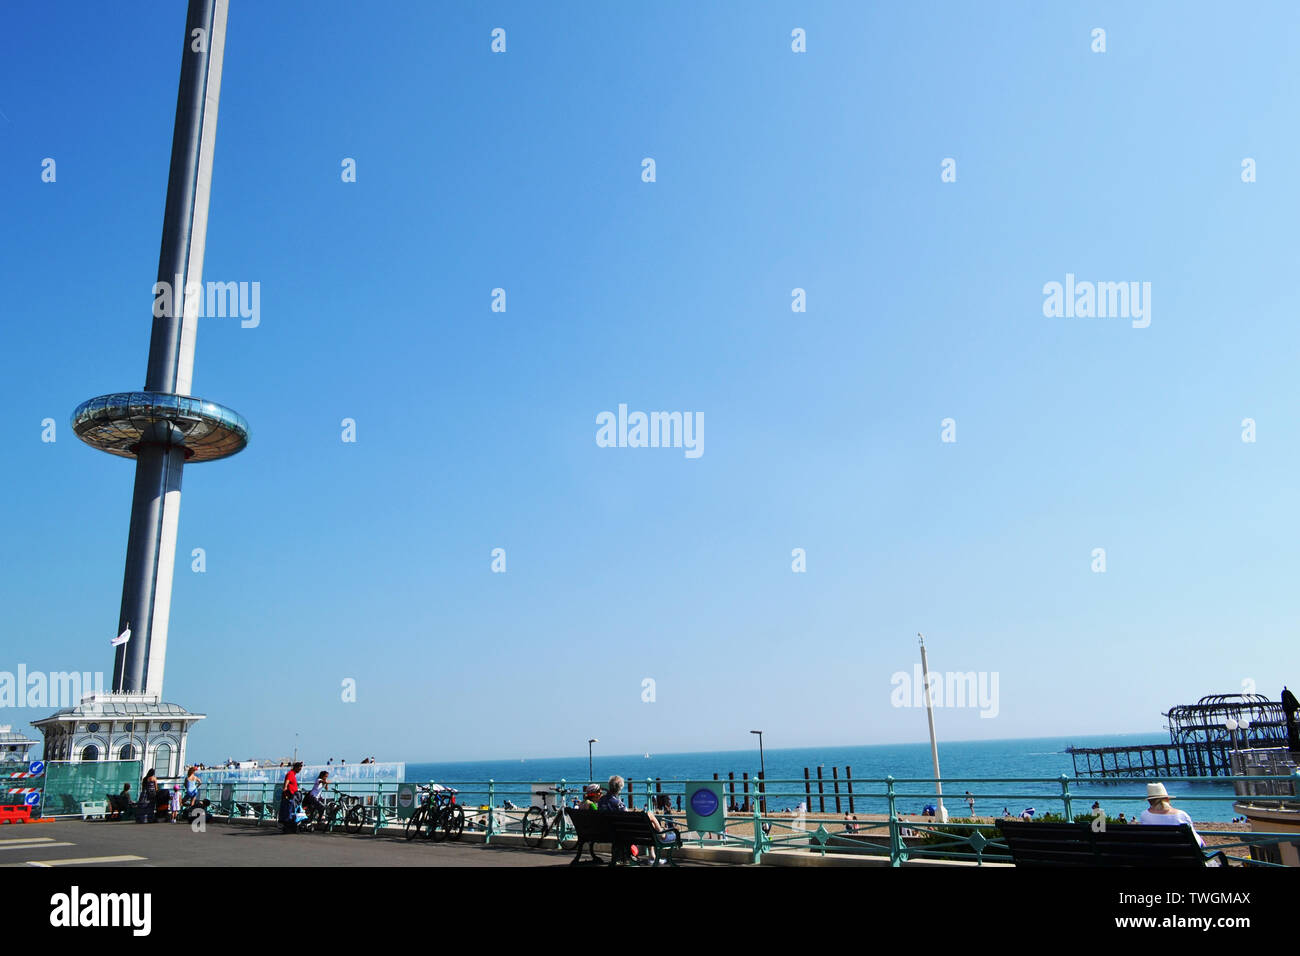 Brighton/UK - August 17, 2016: Observation tower British Airways i360 and remains of the West Pier in Brighton in a happy sunny summer day. Stock Photo